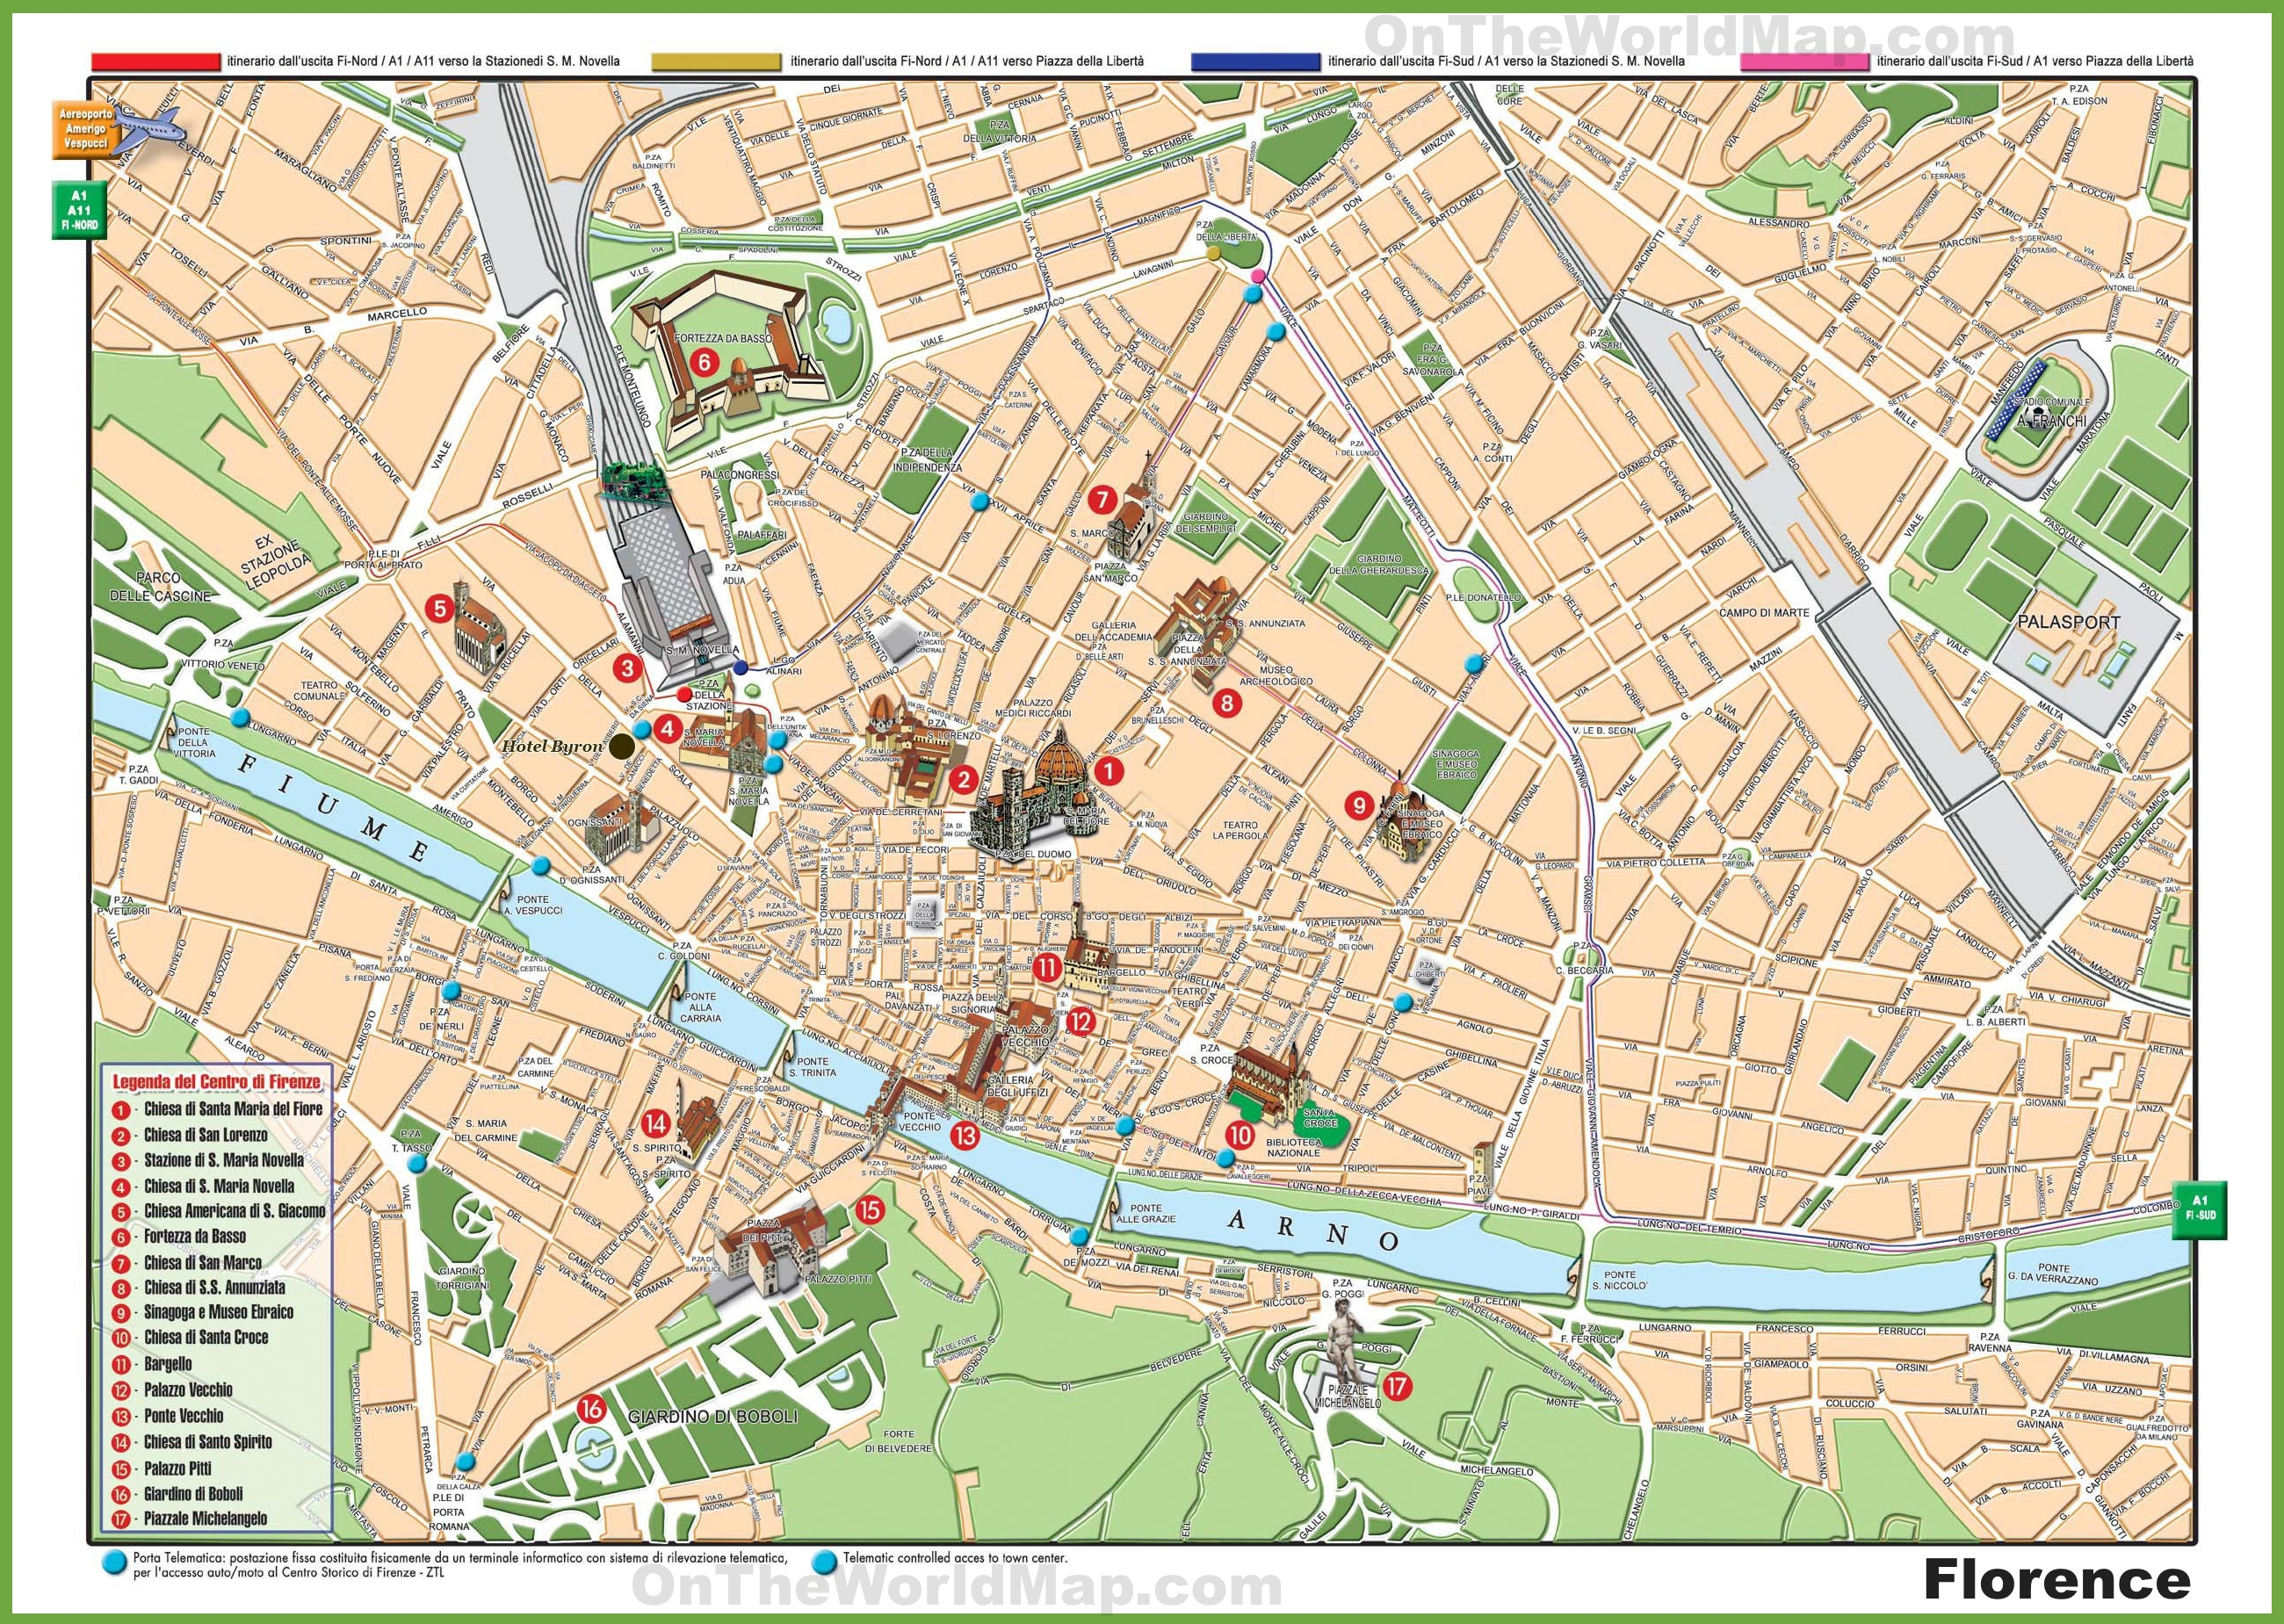 Florence sightseeing map